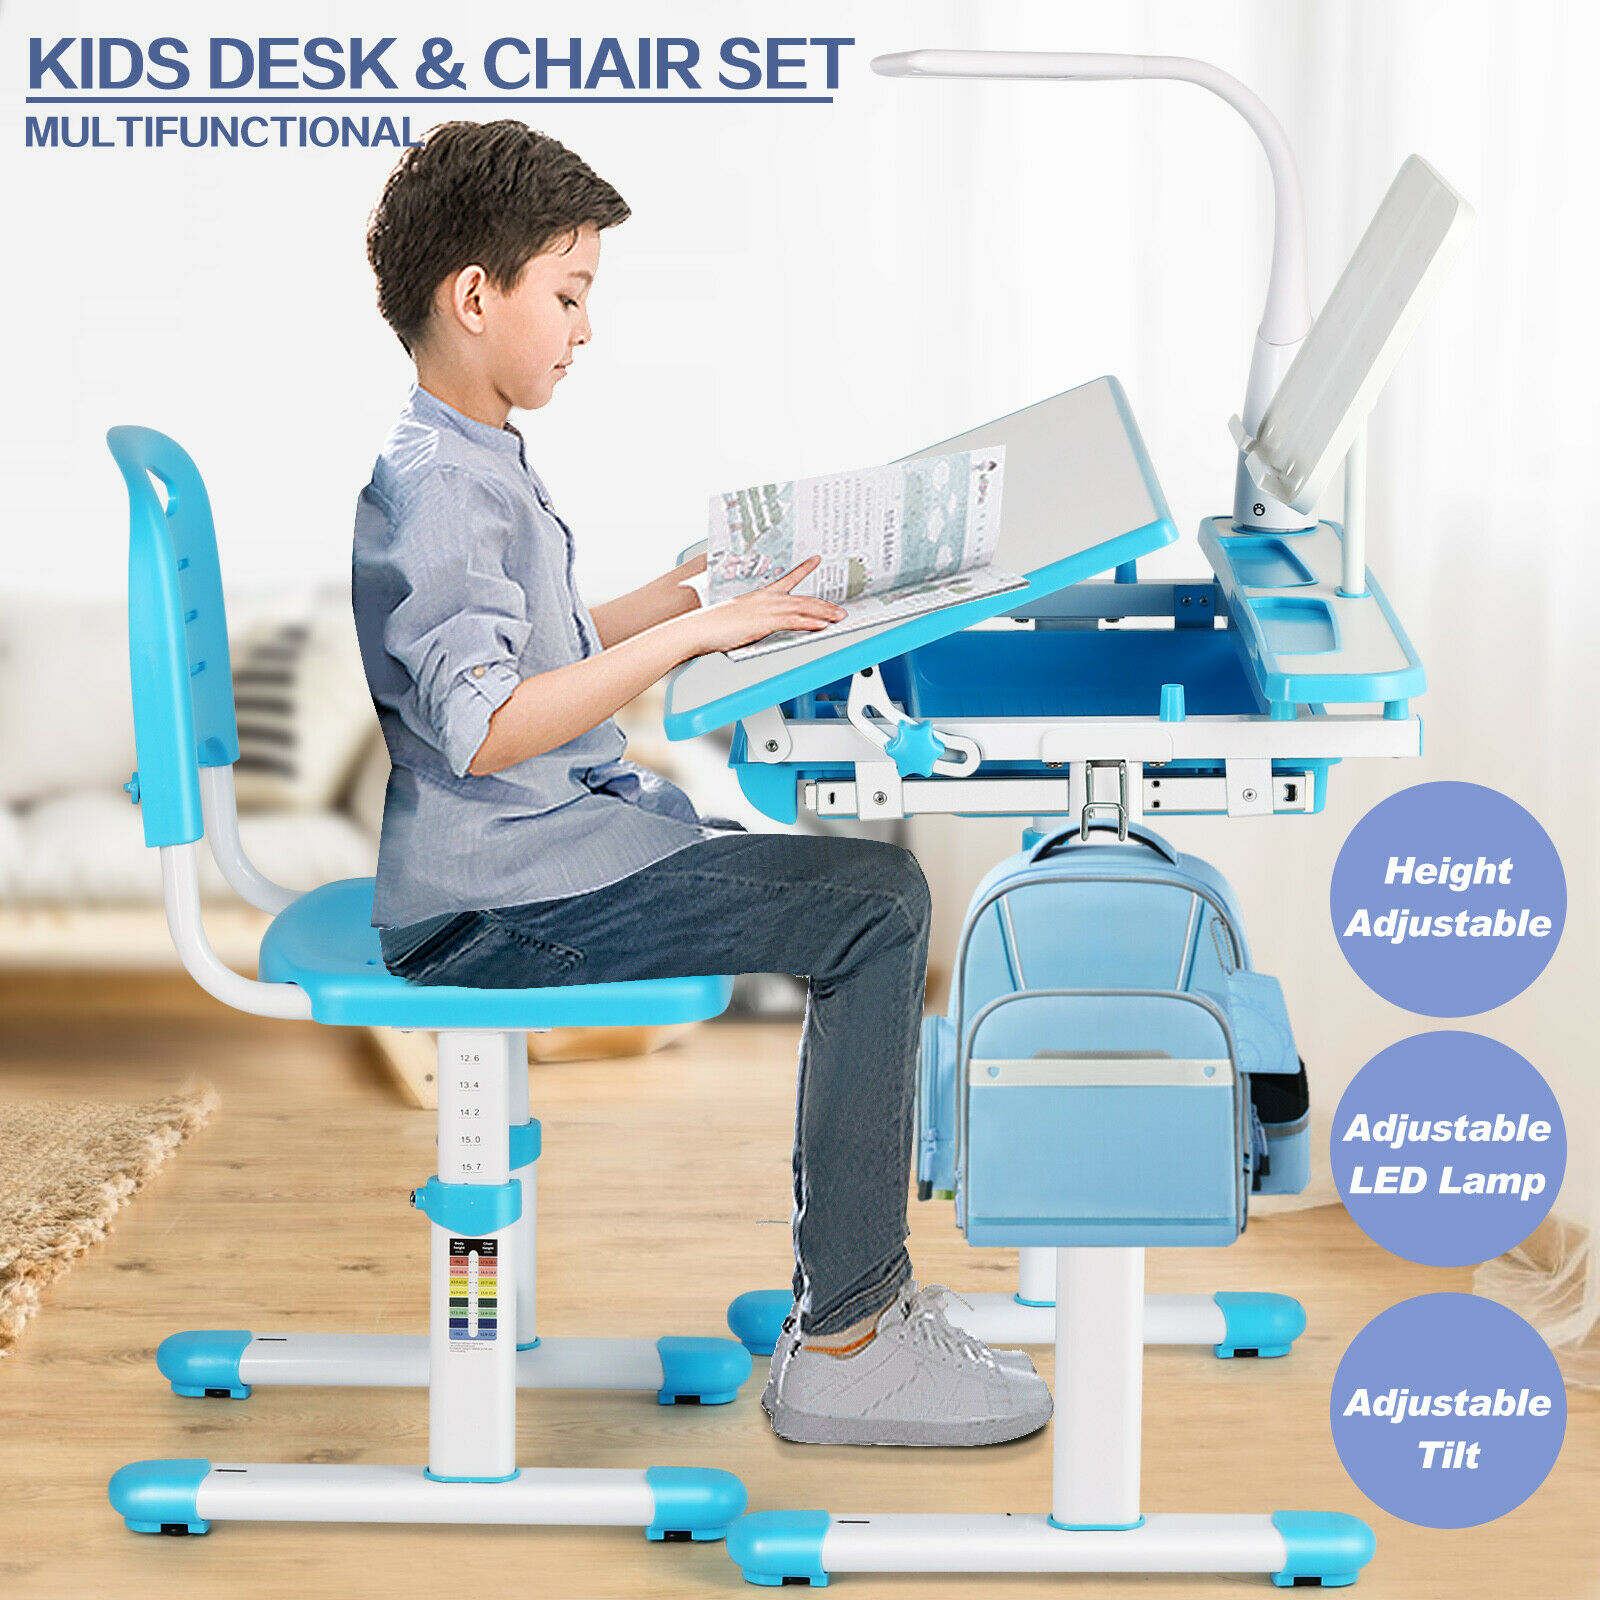 Height Adjustable Kids Study Desk Chair Set Table Lamp Drawe